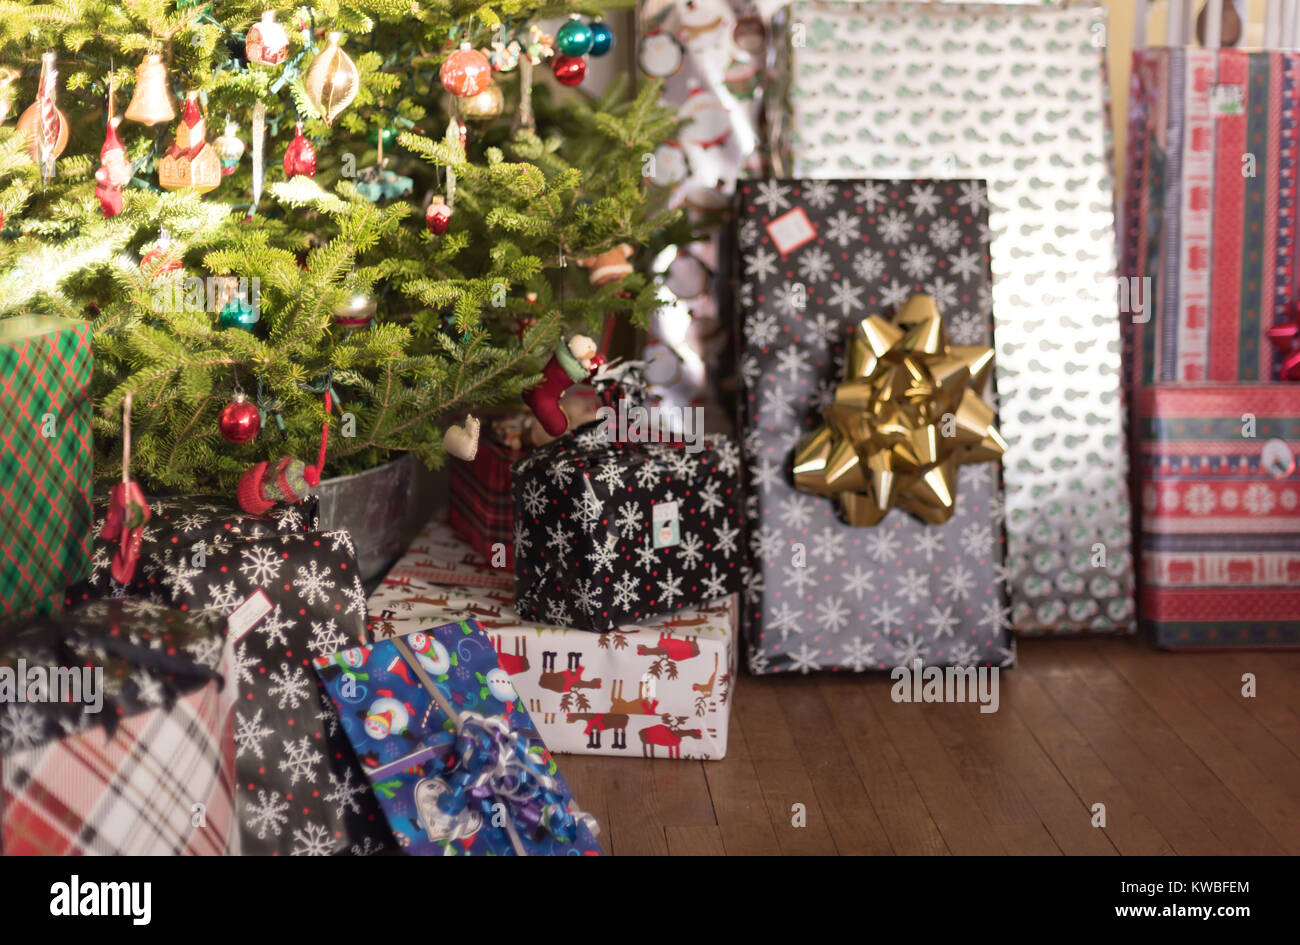 presents wrapped up sitting under tree on Christmas morning - Stock Image